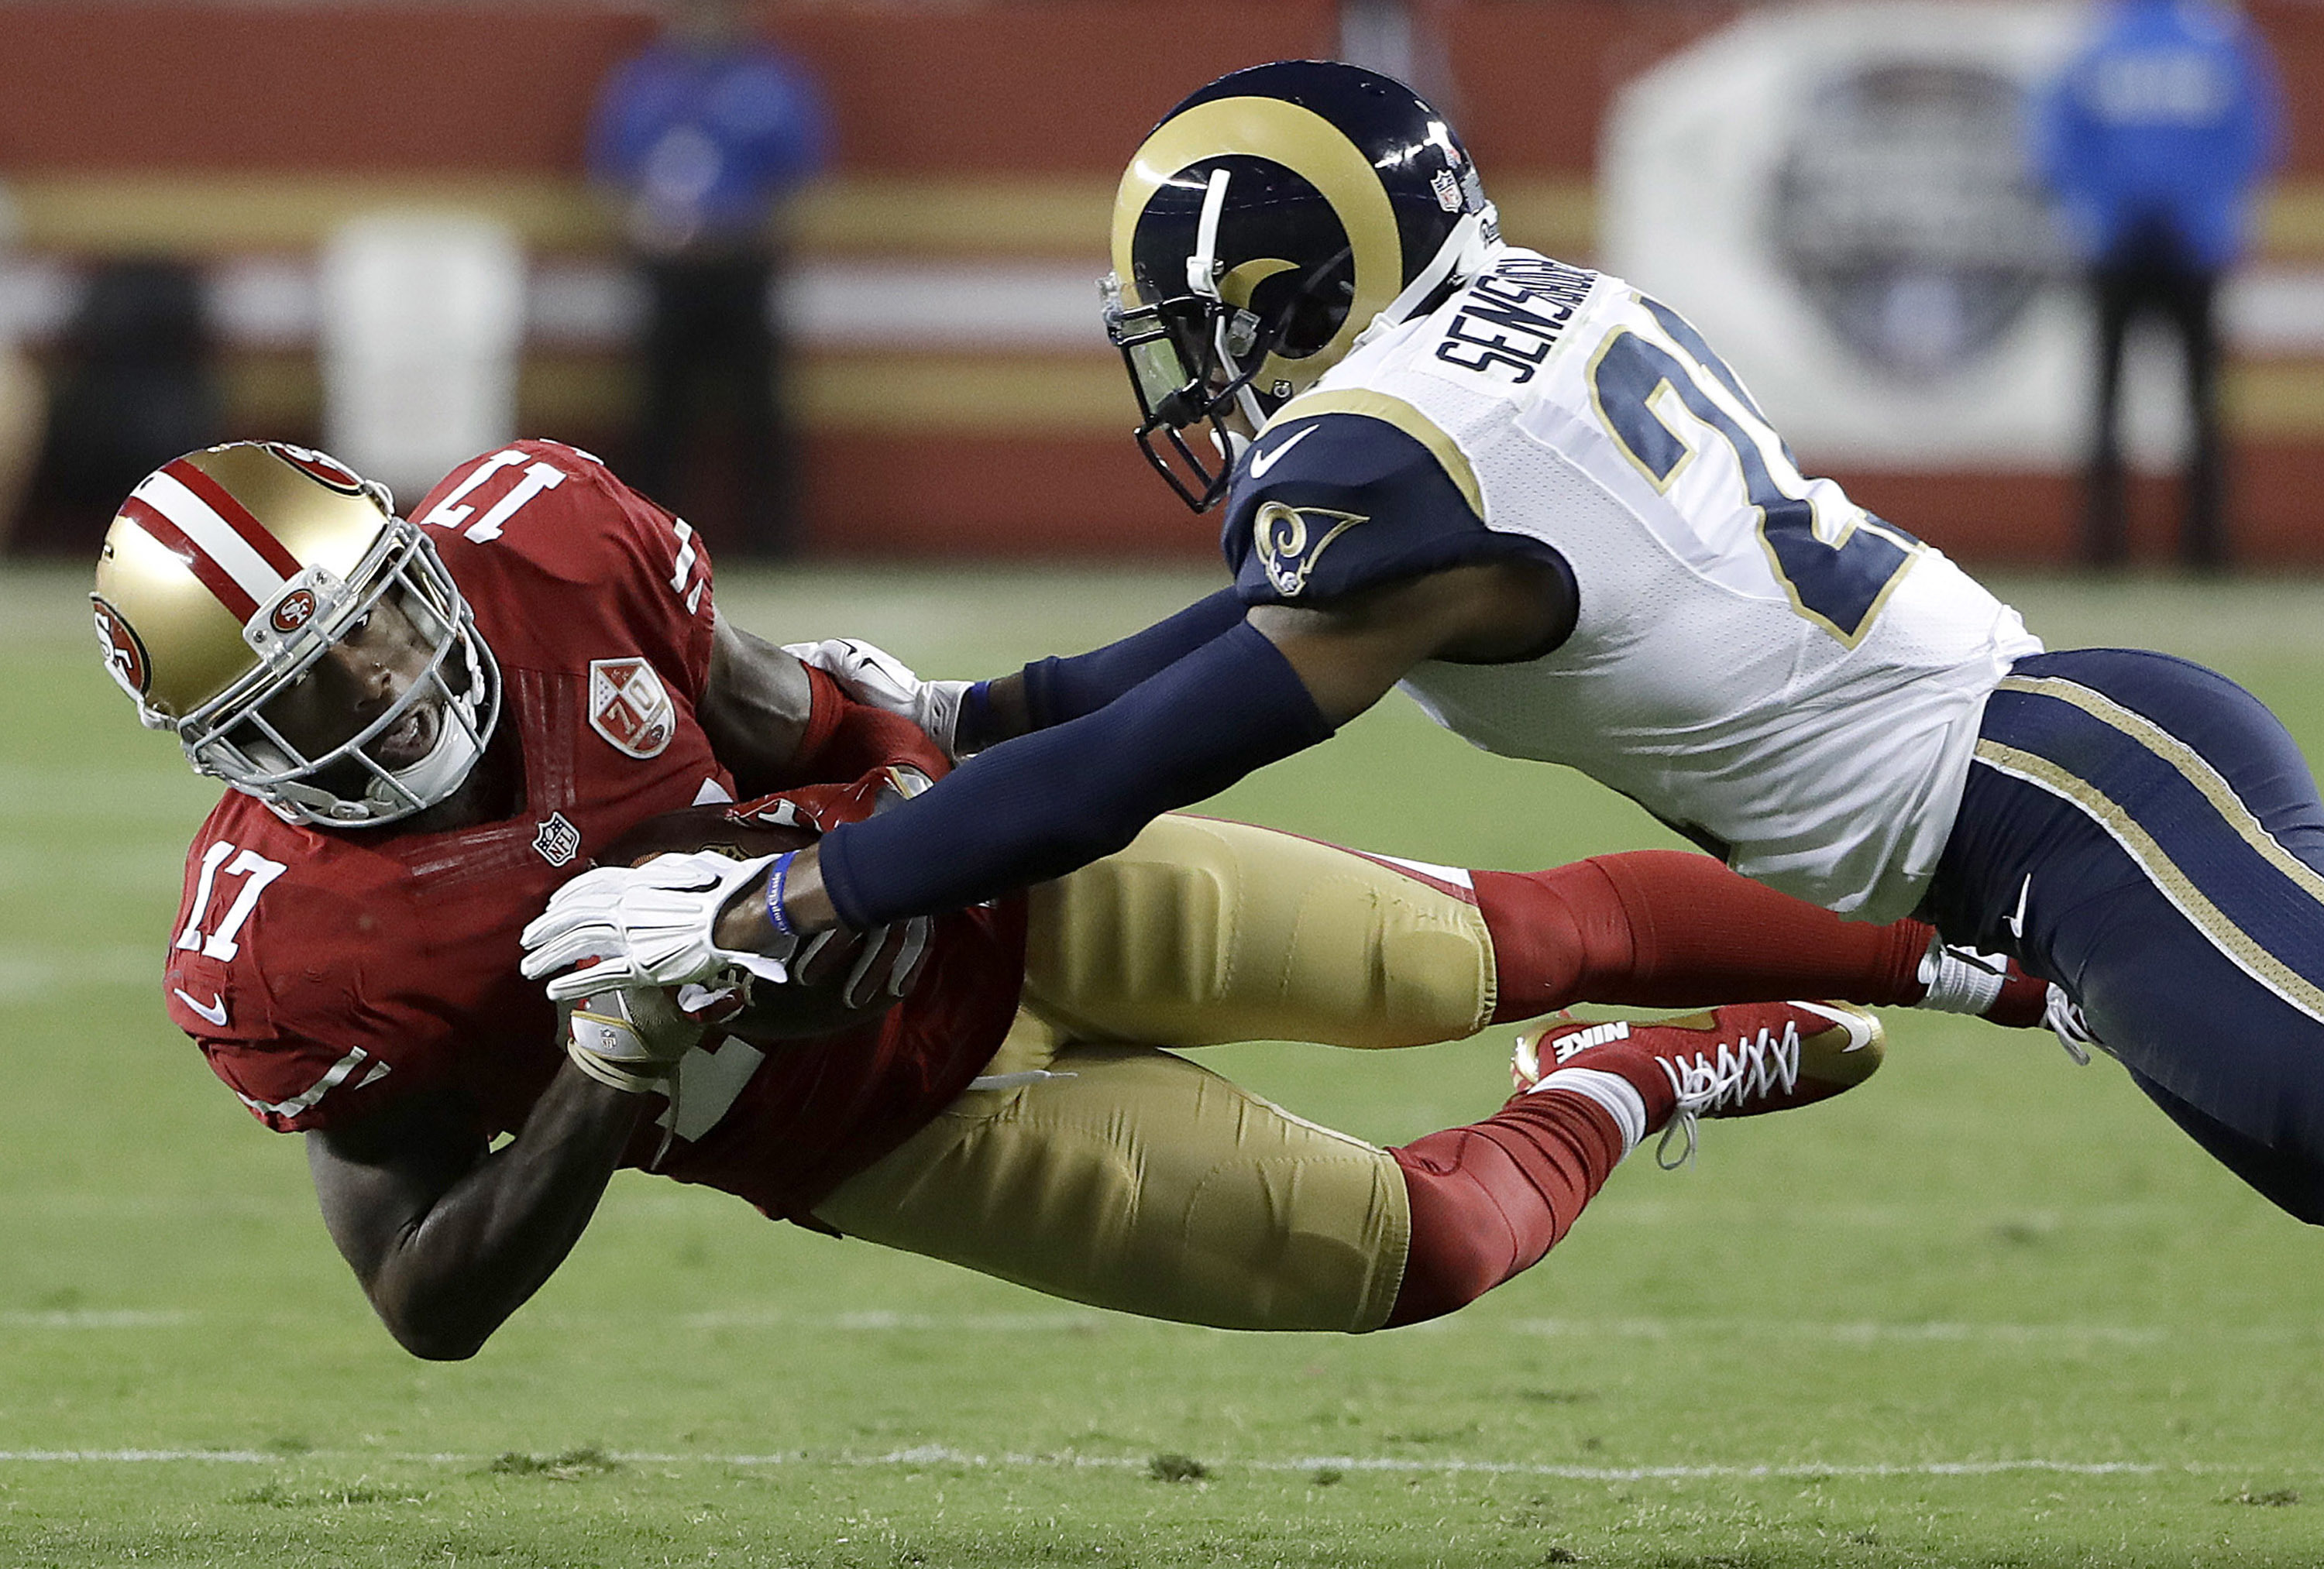 San Francisco 49ers wide receiver Jeremy Kerley (17) catches a pass in front of Los Angeles Rams defensive back Coty Sensabaugh during the first half of an NFL football game in Santa Clara, Calif., Monday, Sept. 12, 2016. (AP Photo/Marcio Jose Sanchez)